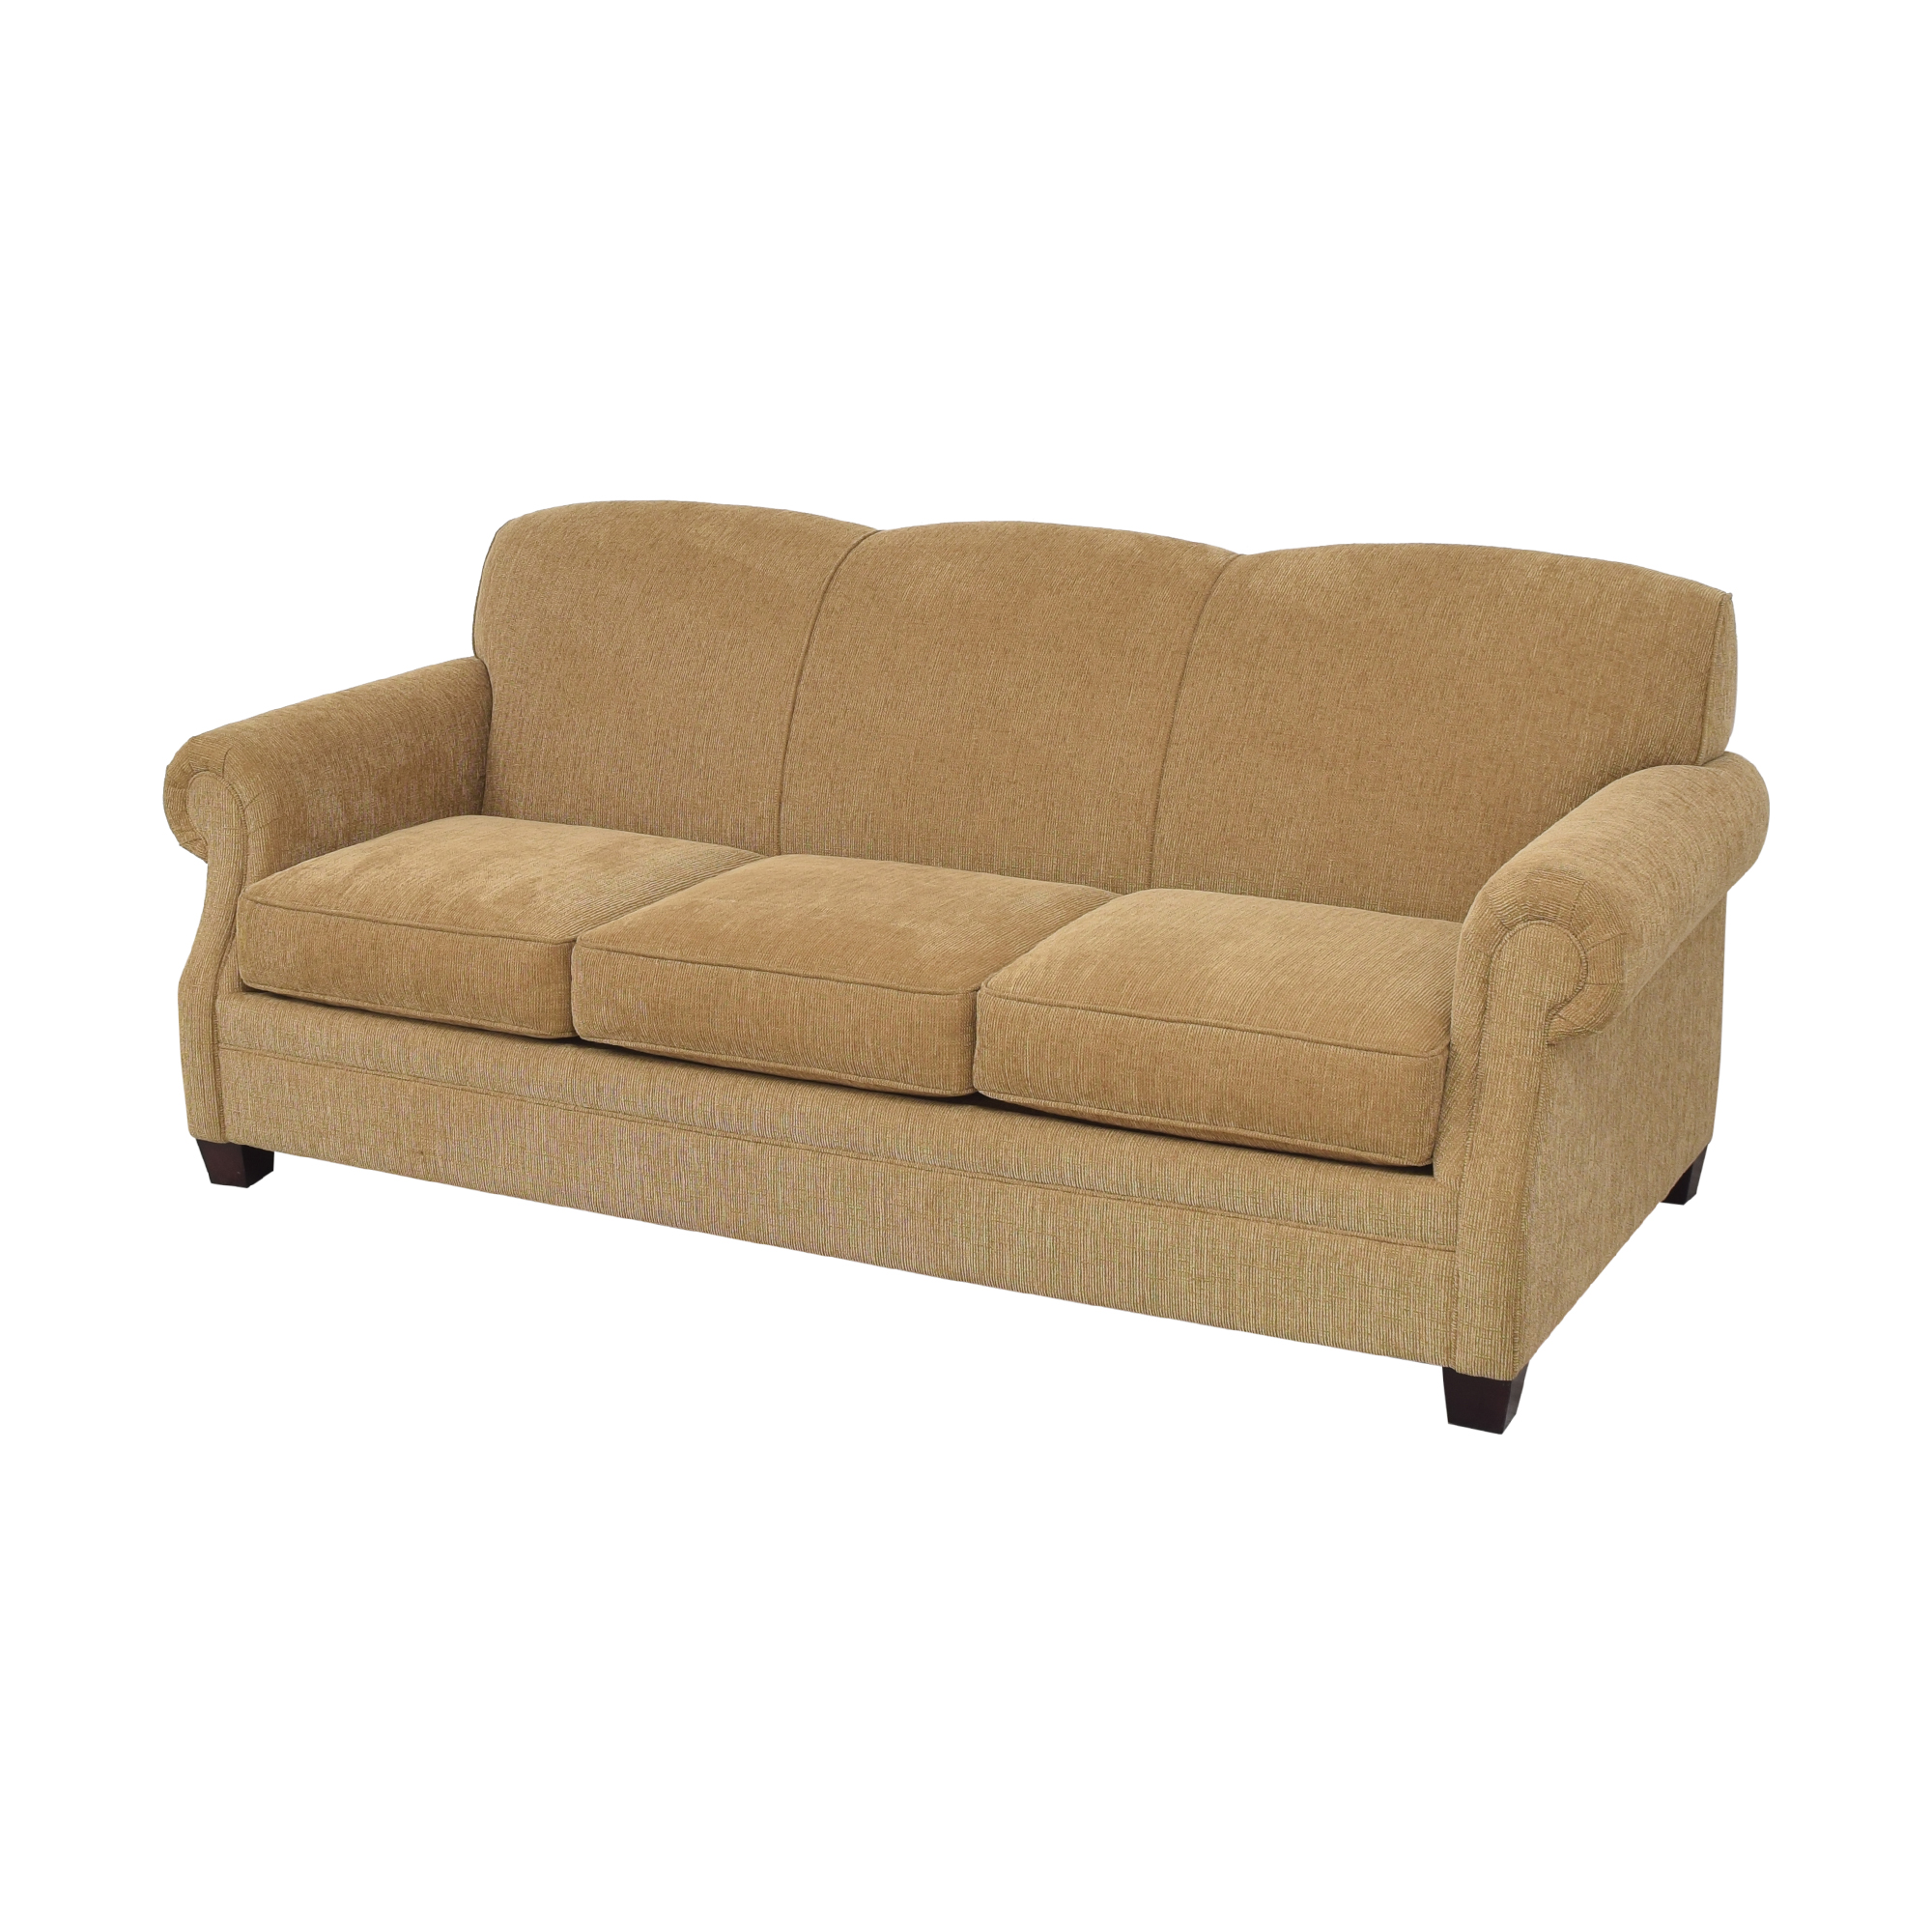 Bauhaus Furniture Bauhaus Furniture Wellington Roll Arm Sofa tan